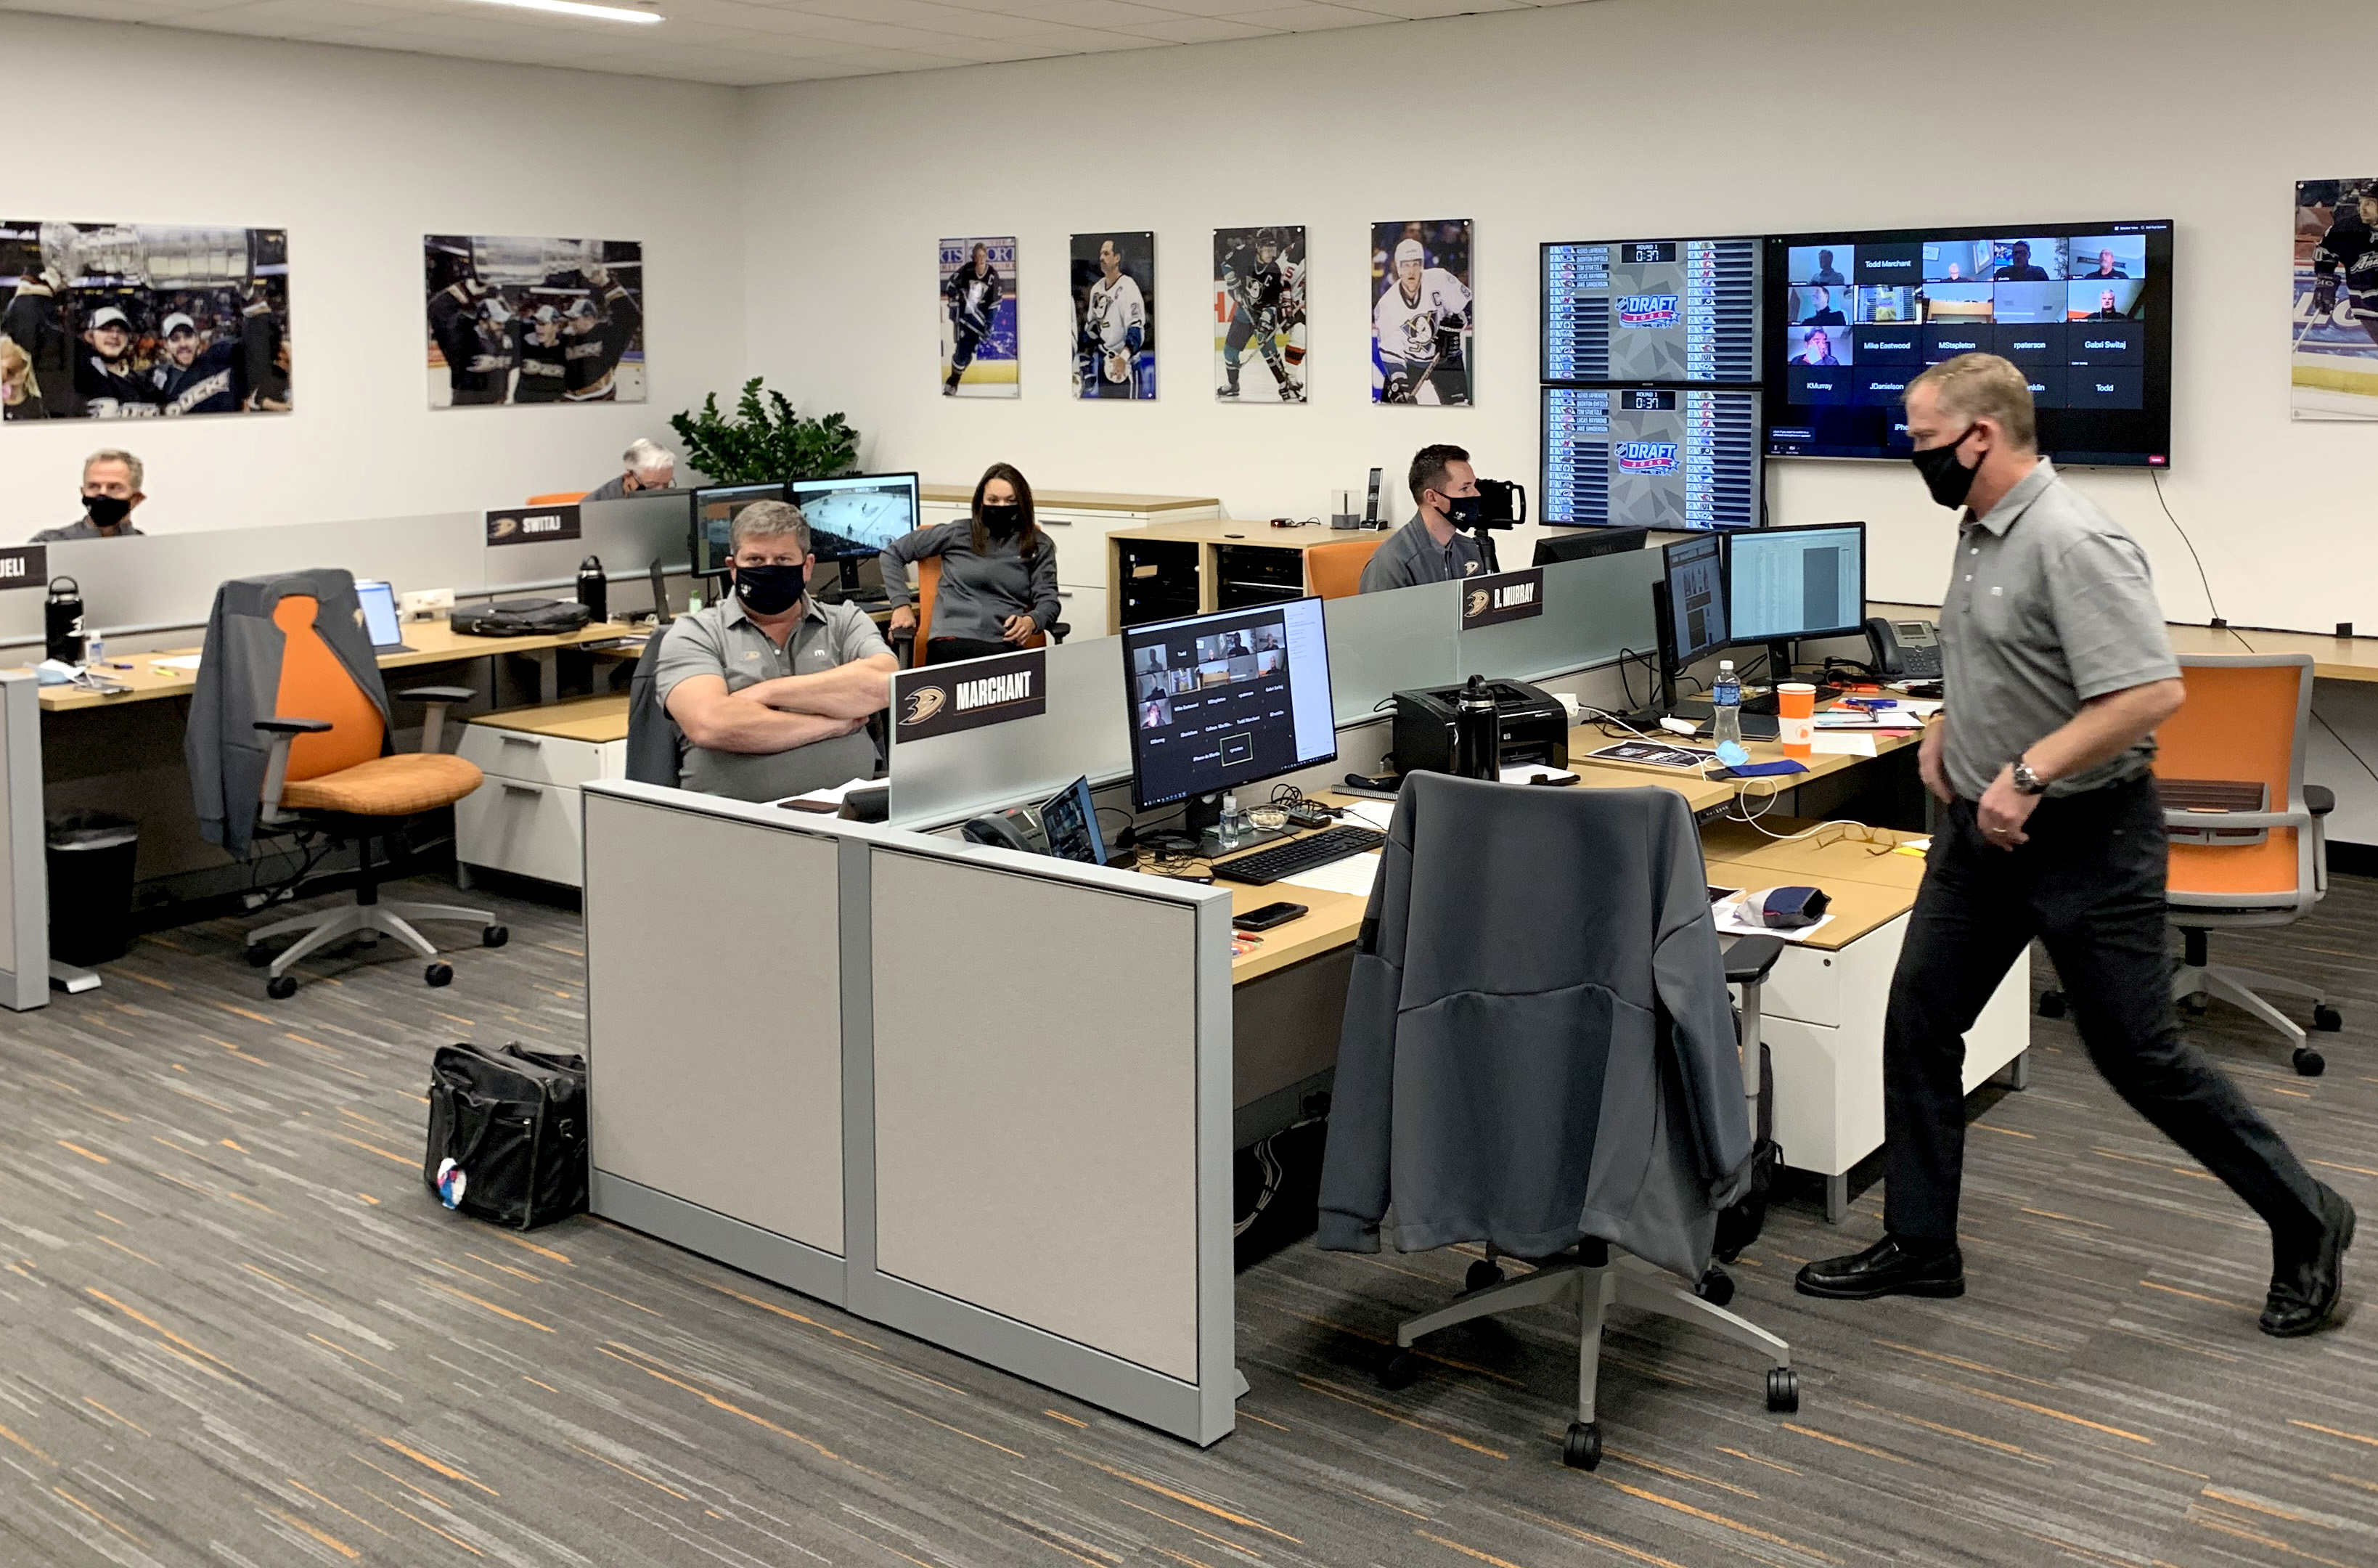 IRVINE, CALIFORNIA- OCTOBER 06: The Anaheim Ducks team personnel works in their draft room during the first round of the 2020 NHL Entry Draft at the Great Park Ice on October 06, 2020 in Irvine, California. The 2020 NHL Draft was held virtually due to the ongoing Coronavirus pandemic.